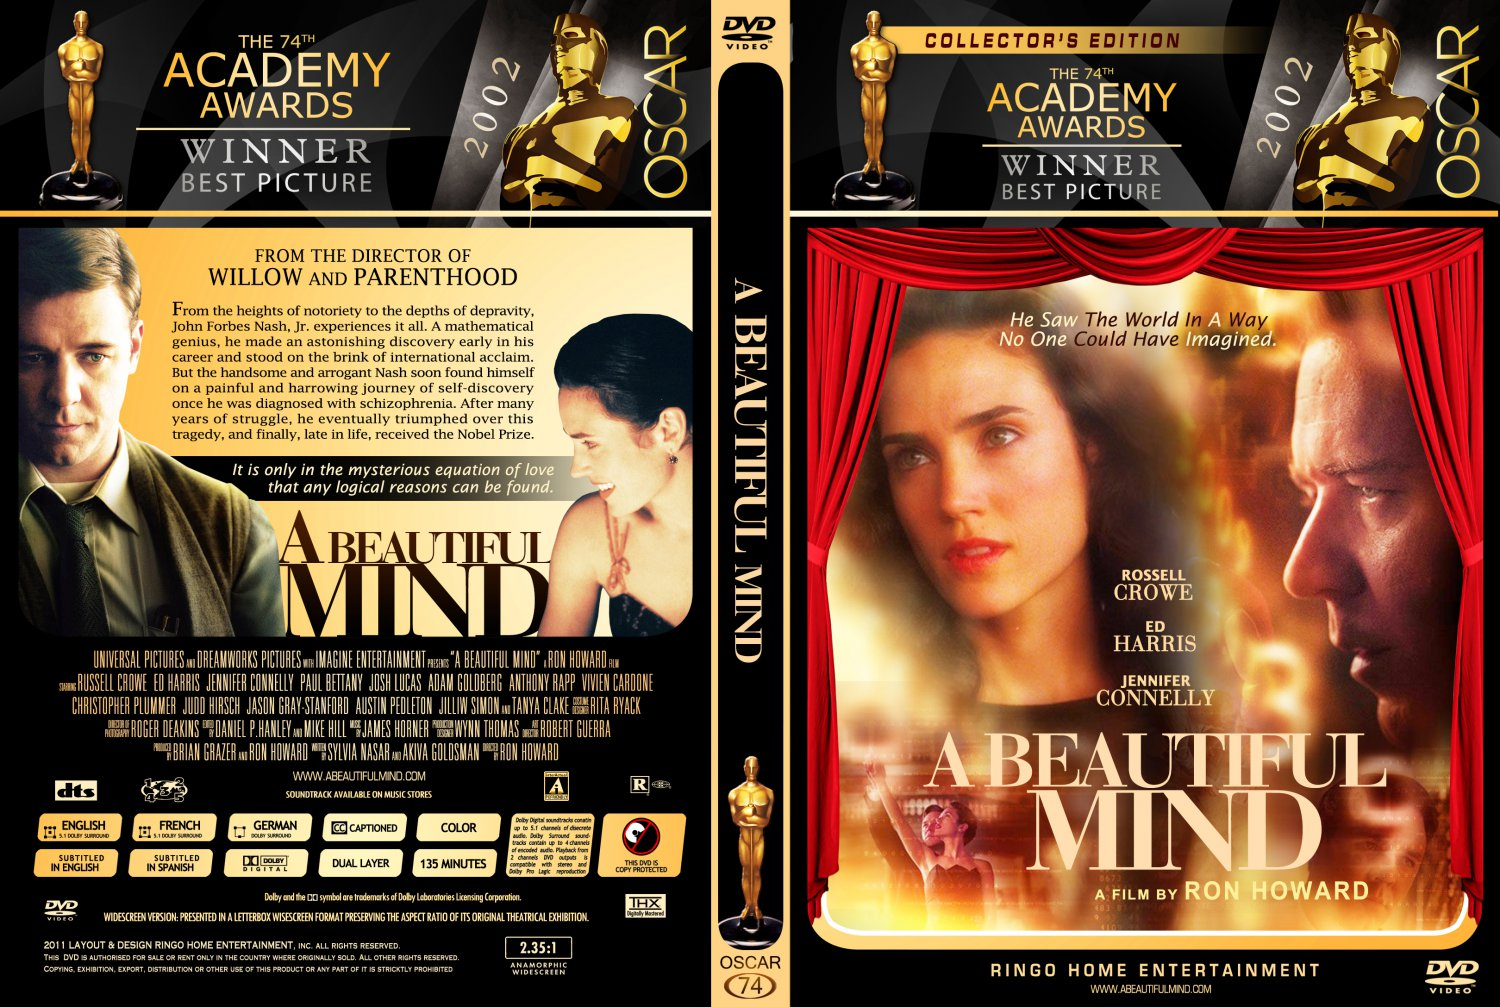 Beautiful Mind 74 A Dvd Cover 2012 Date 03 18 2013 Size